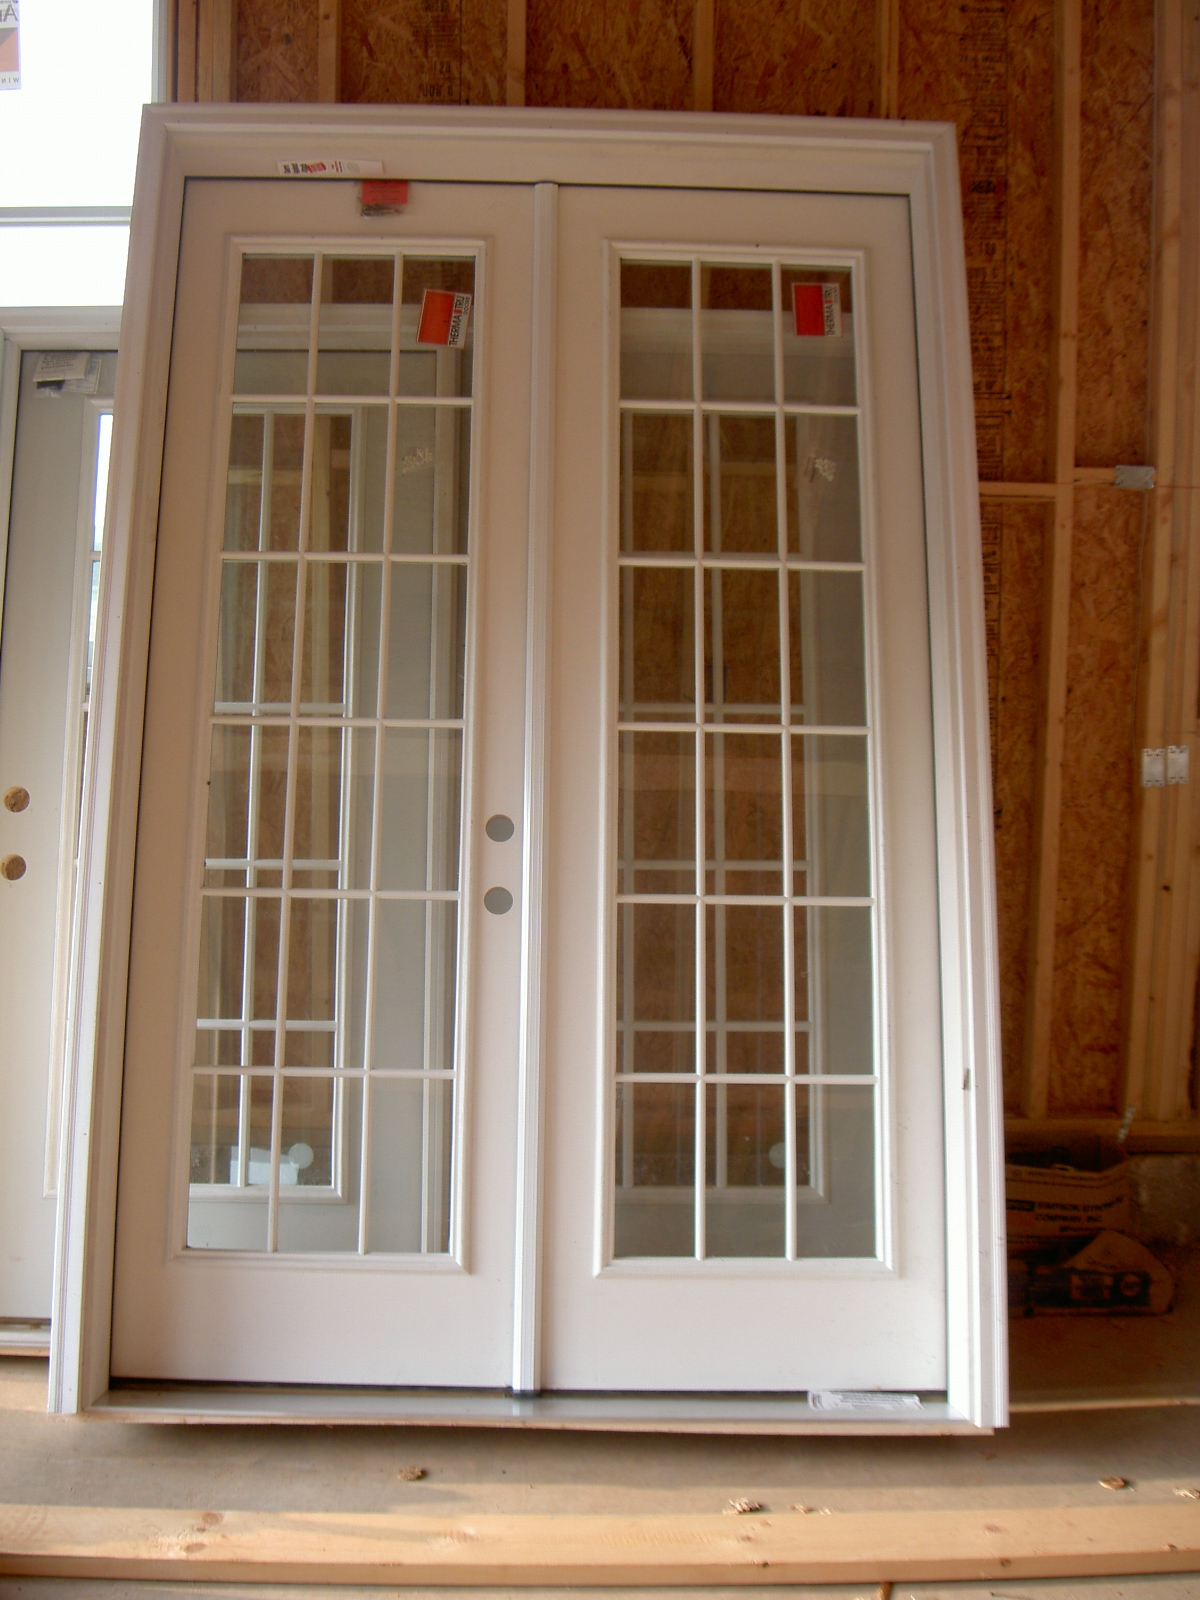 Wide door how wide is the front door we are looking at for Extra wide exterior doors